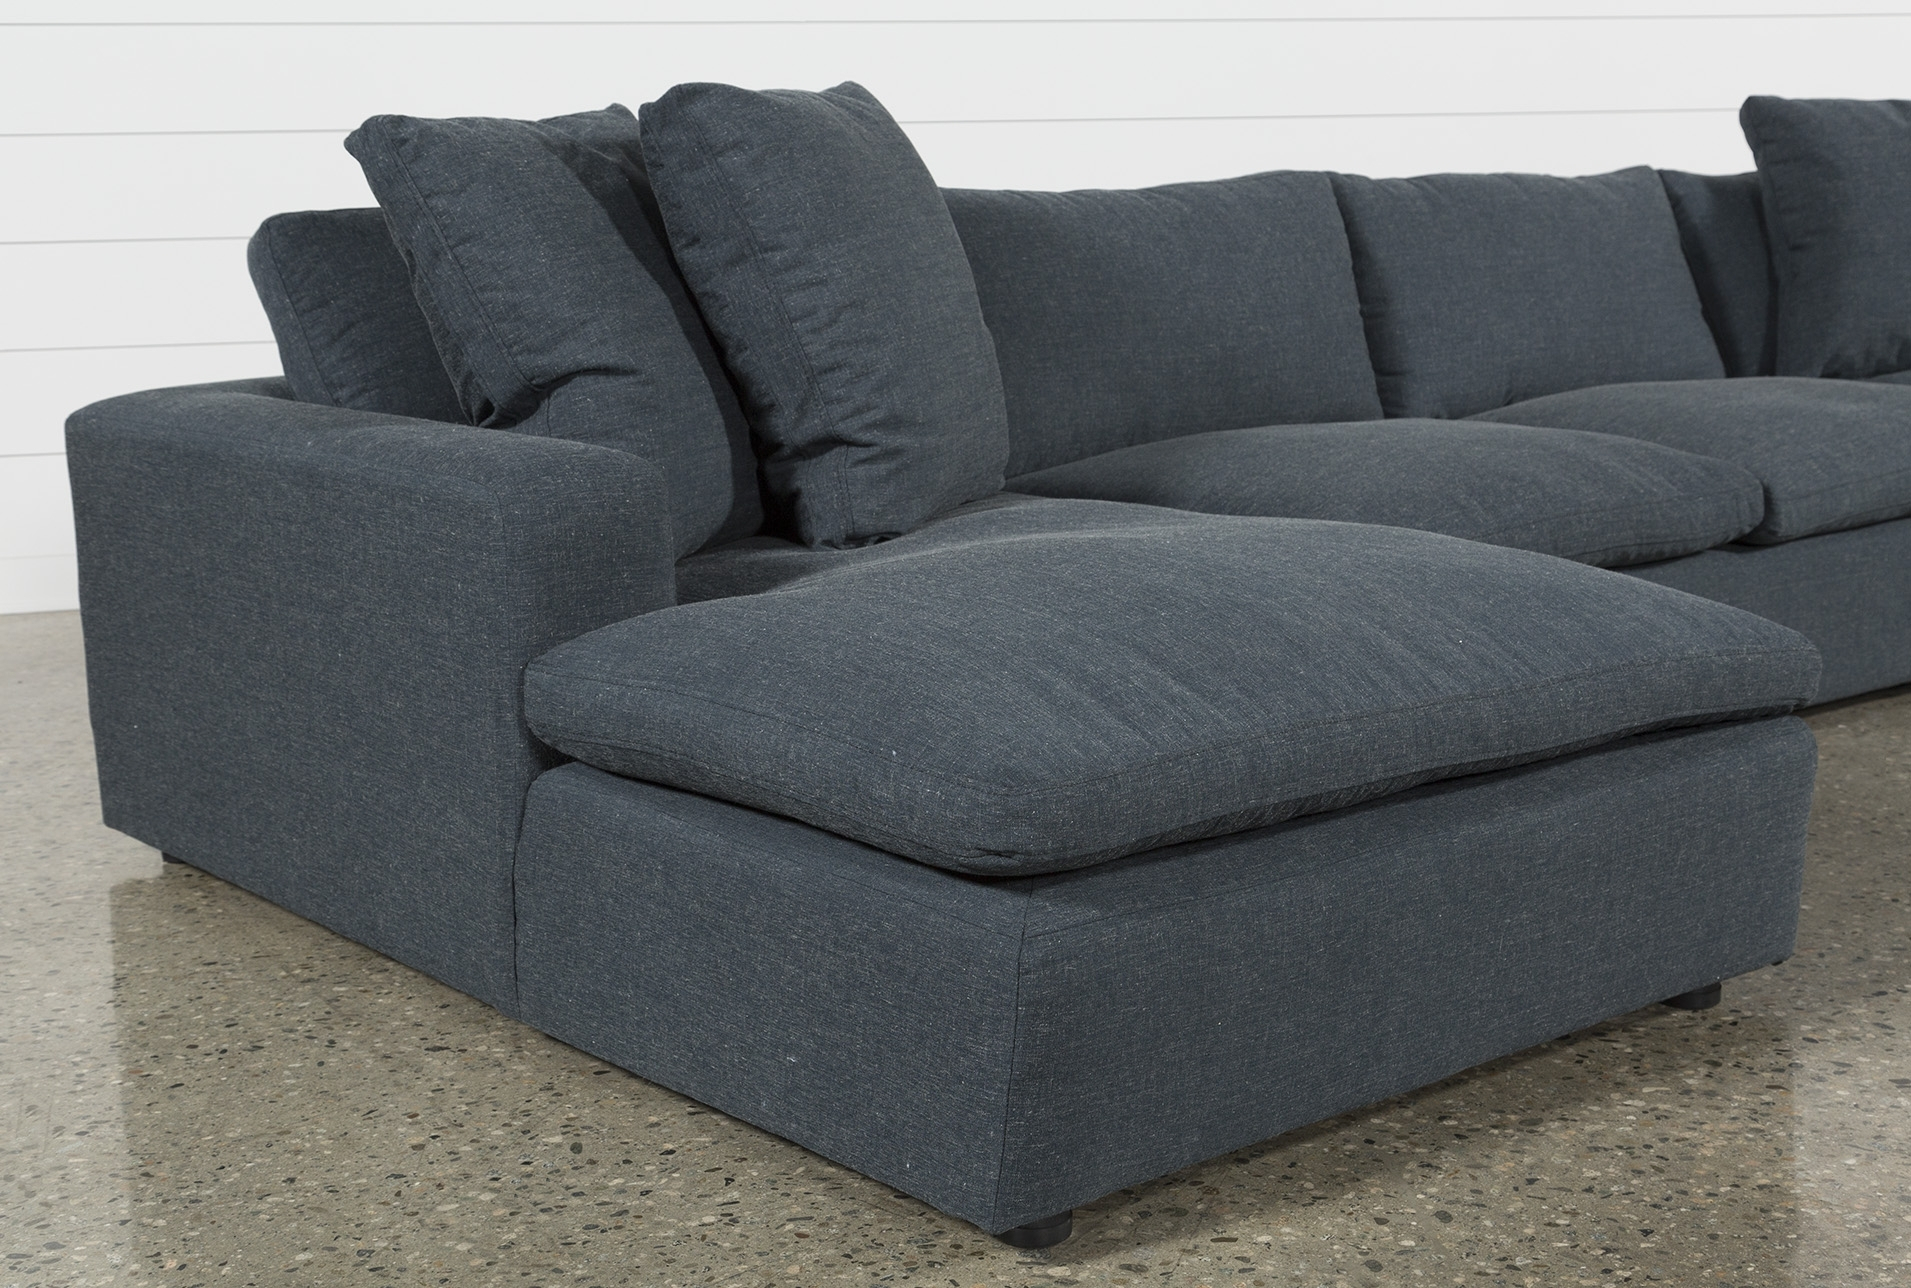 Haven Blue Steel 3 Piece Sectional | Products | Pinterest | Steel Inside Haven Blue Steel 3 Piece Sectionals (View 2 of 25)